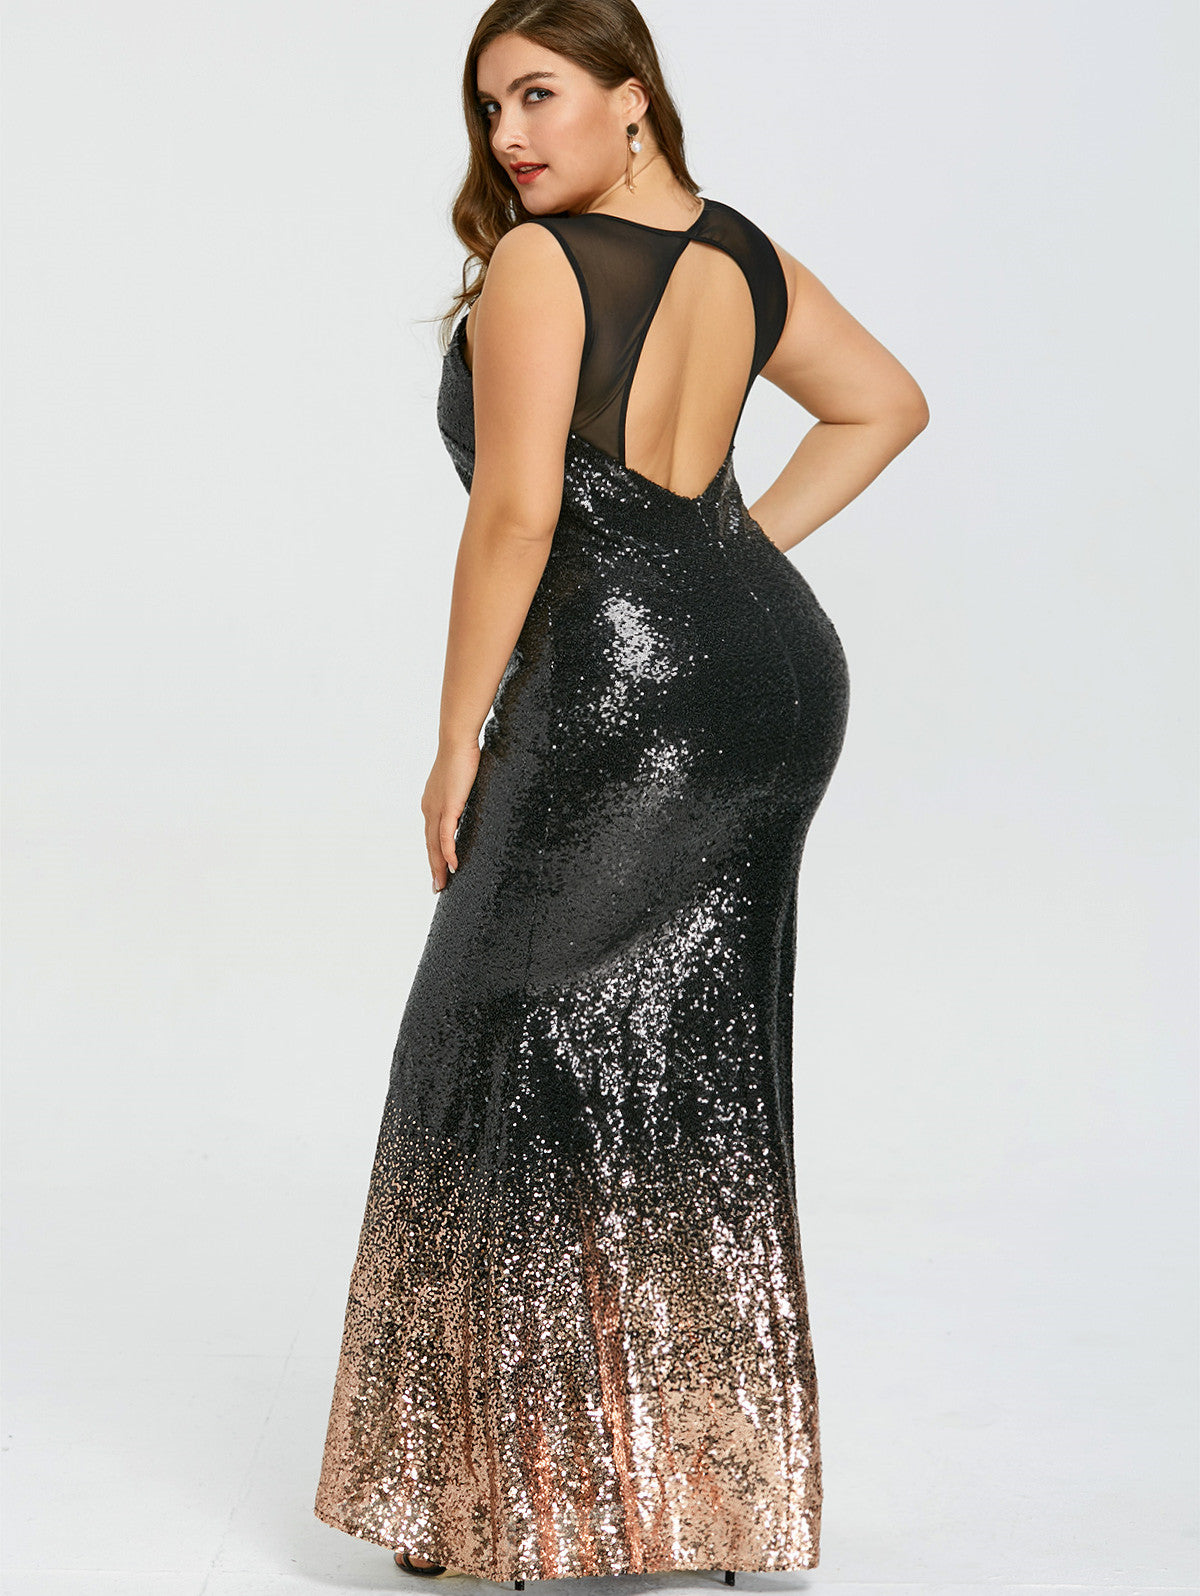 Gamiss Women 2018 Plus Size XL-5XL Open Back Sparkly Dress Fashion  Sleeveless Maxi Dress Party ... c86af50ff2f6